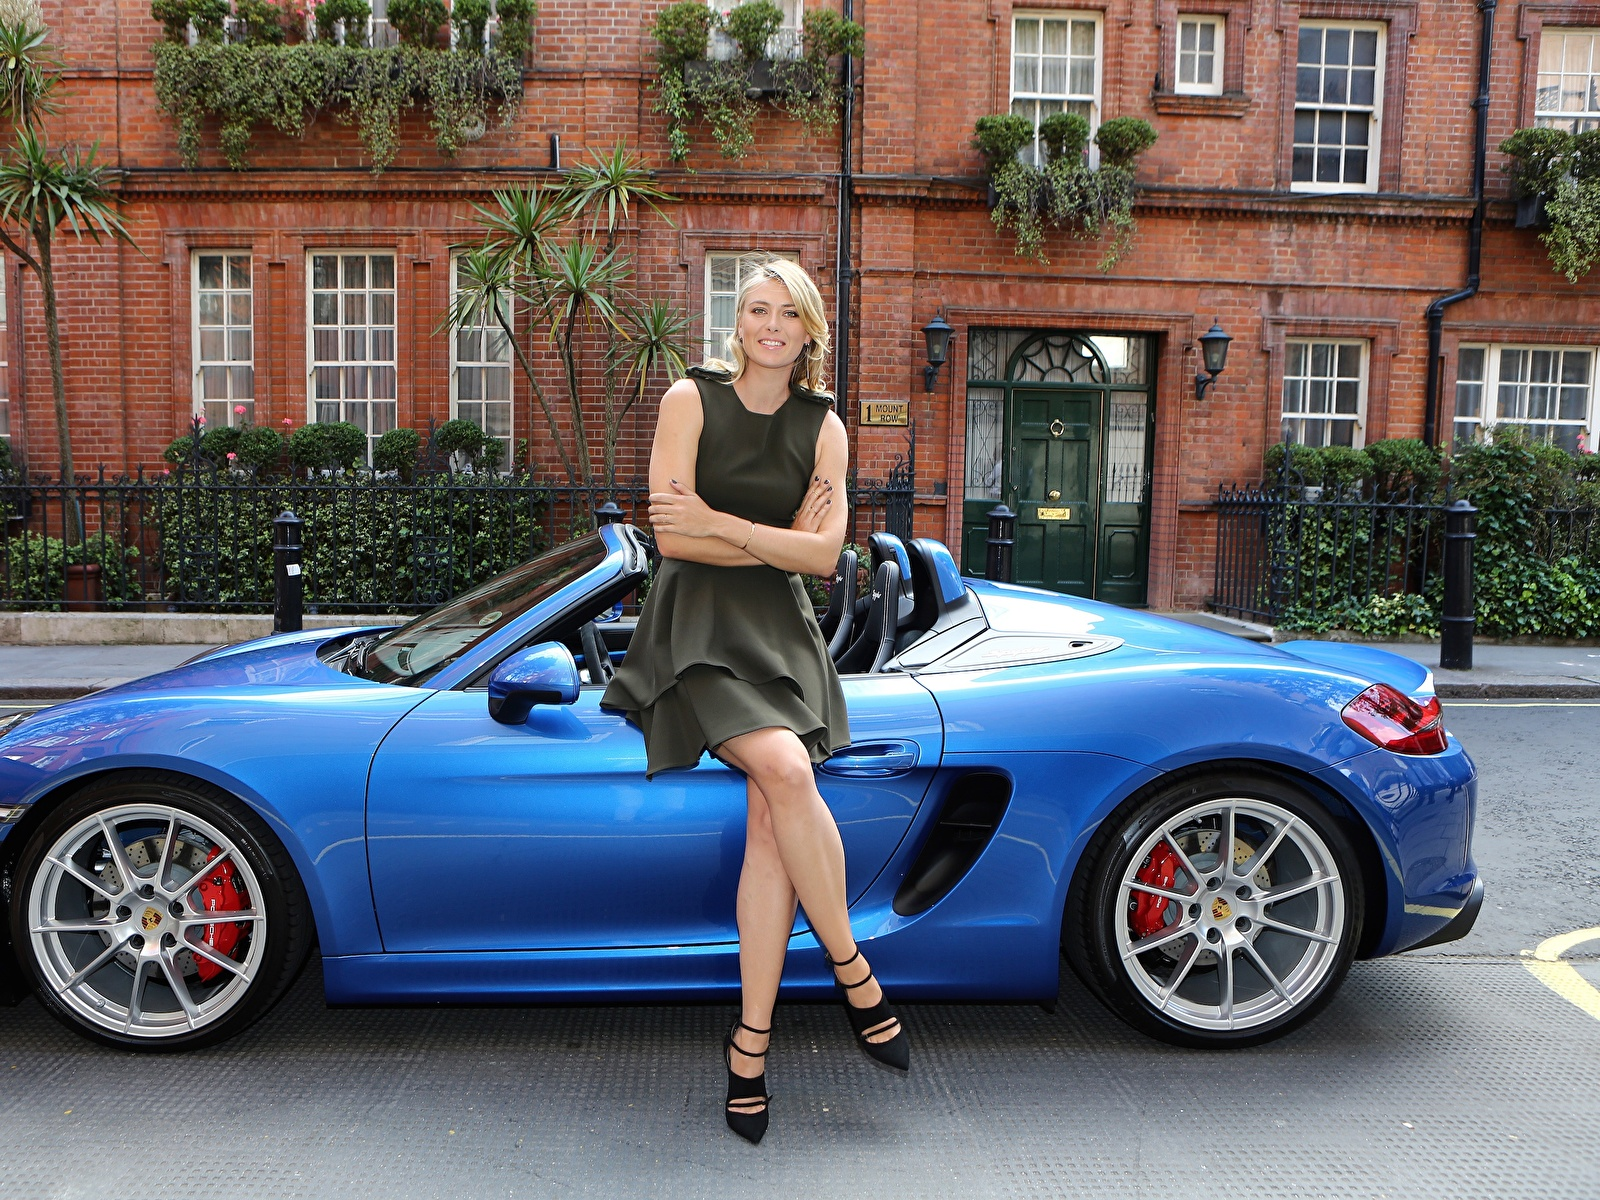 Wallpaper Maria Sharapova Porsche Girls Celebrities 1600x1200